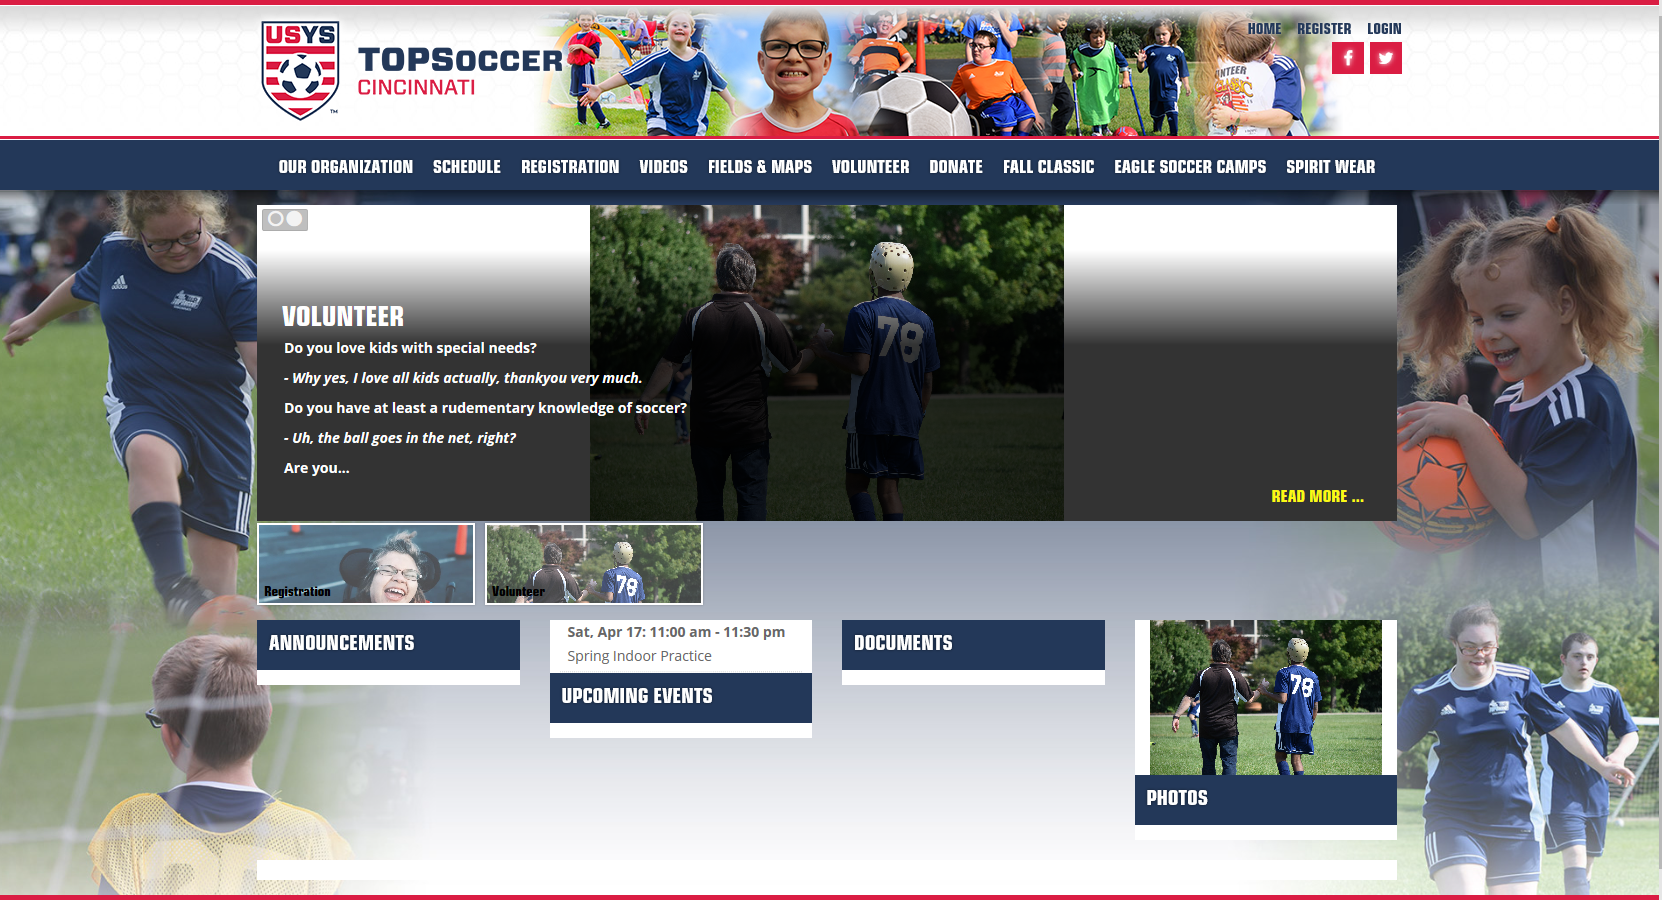 New Website Launched for Cincinnati TOPSoccer